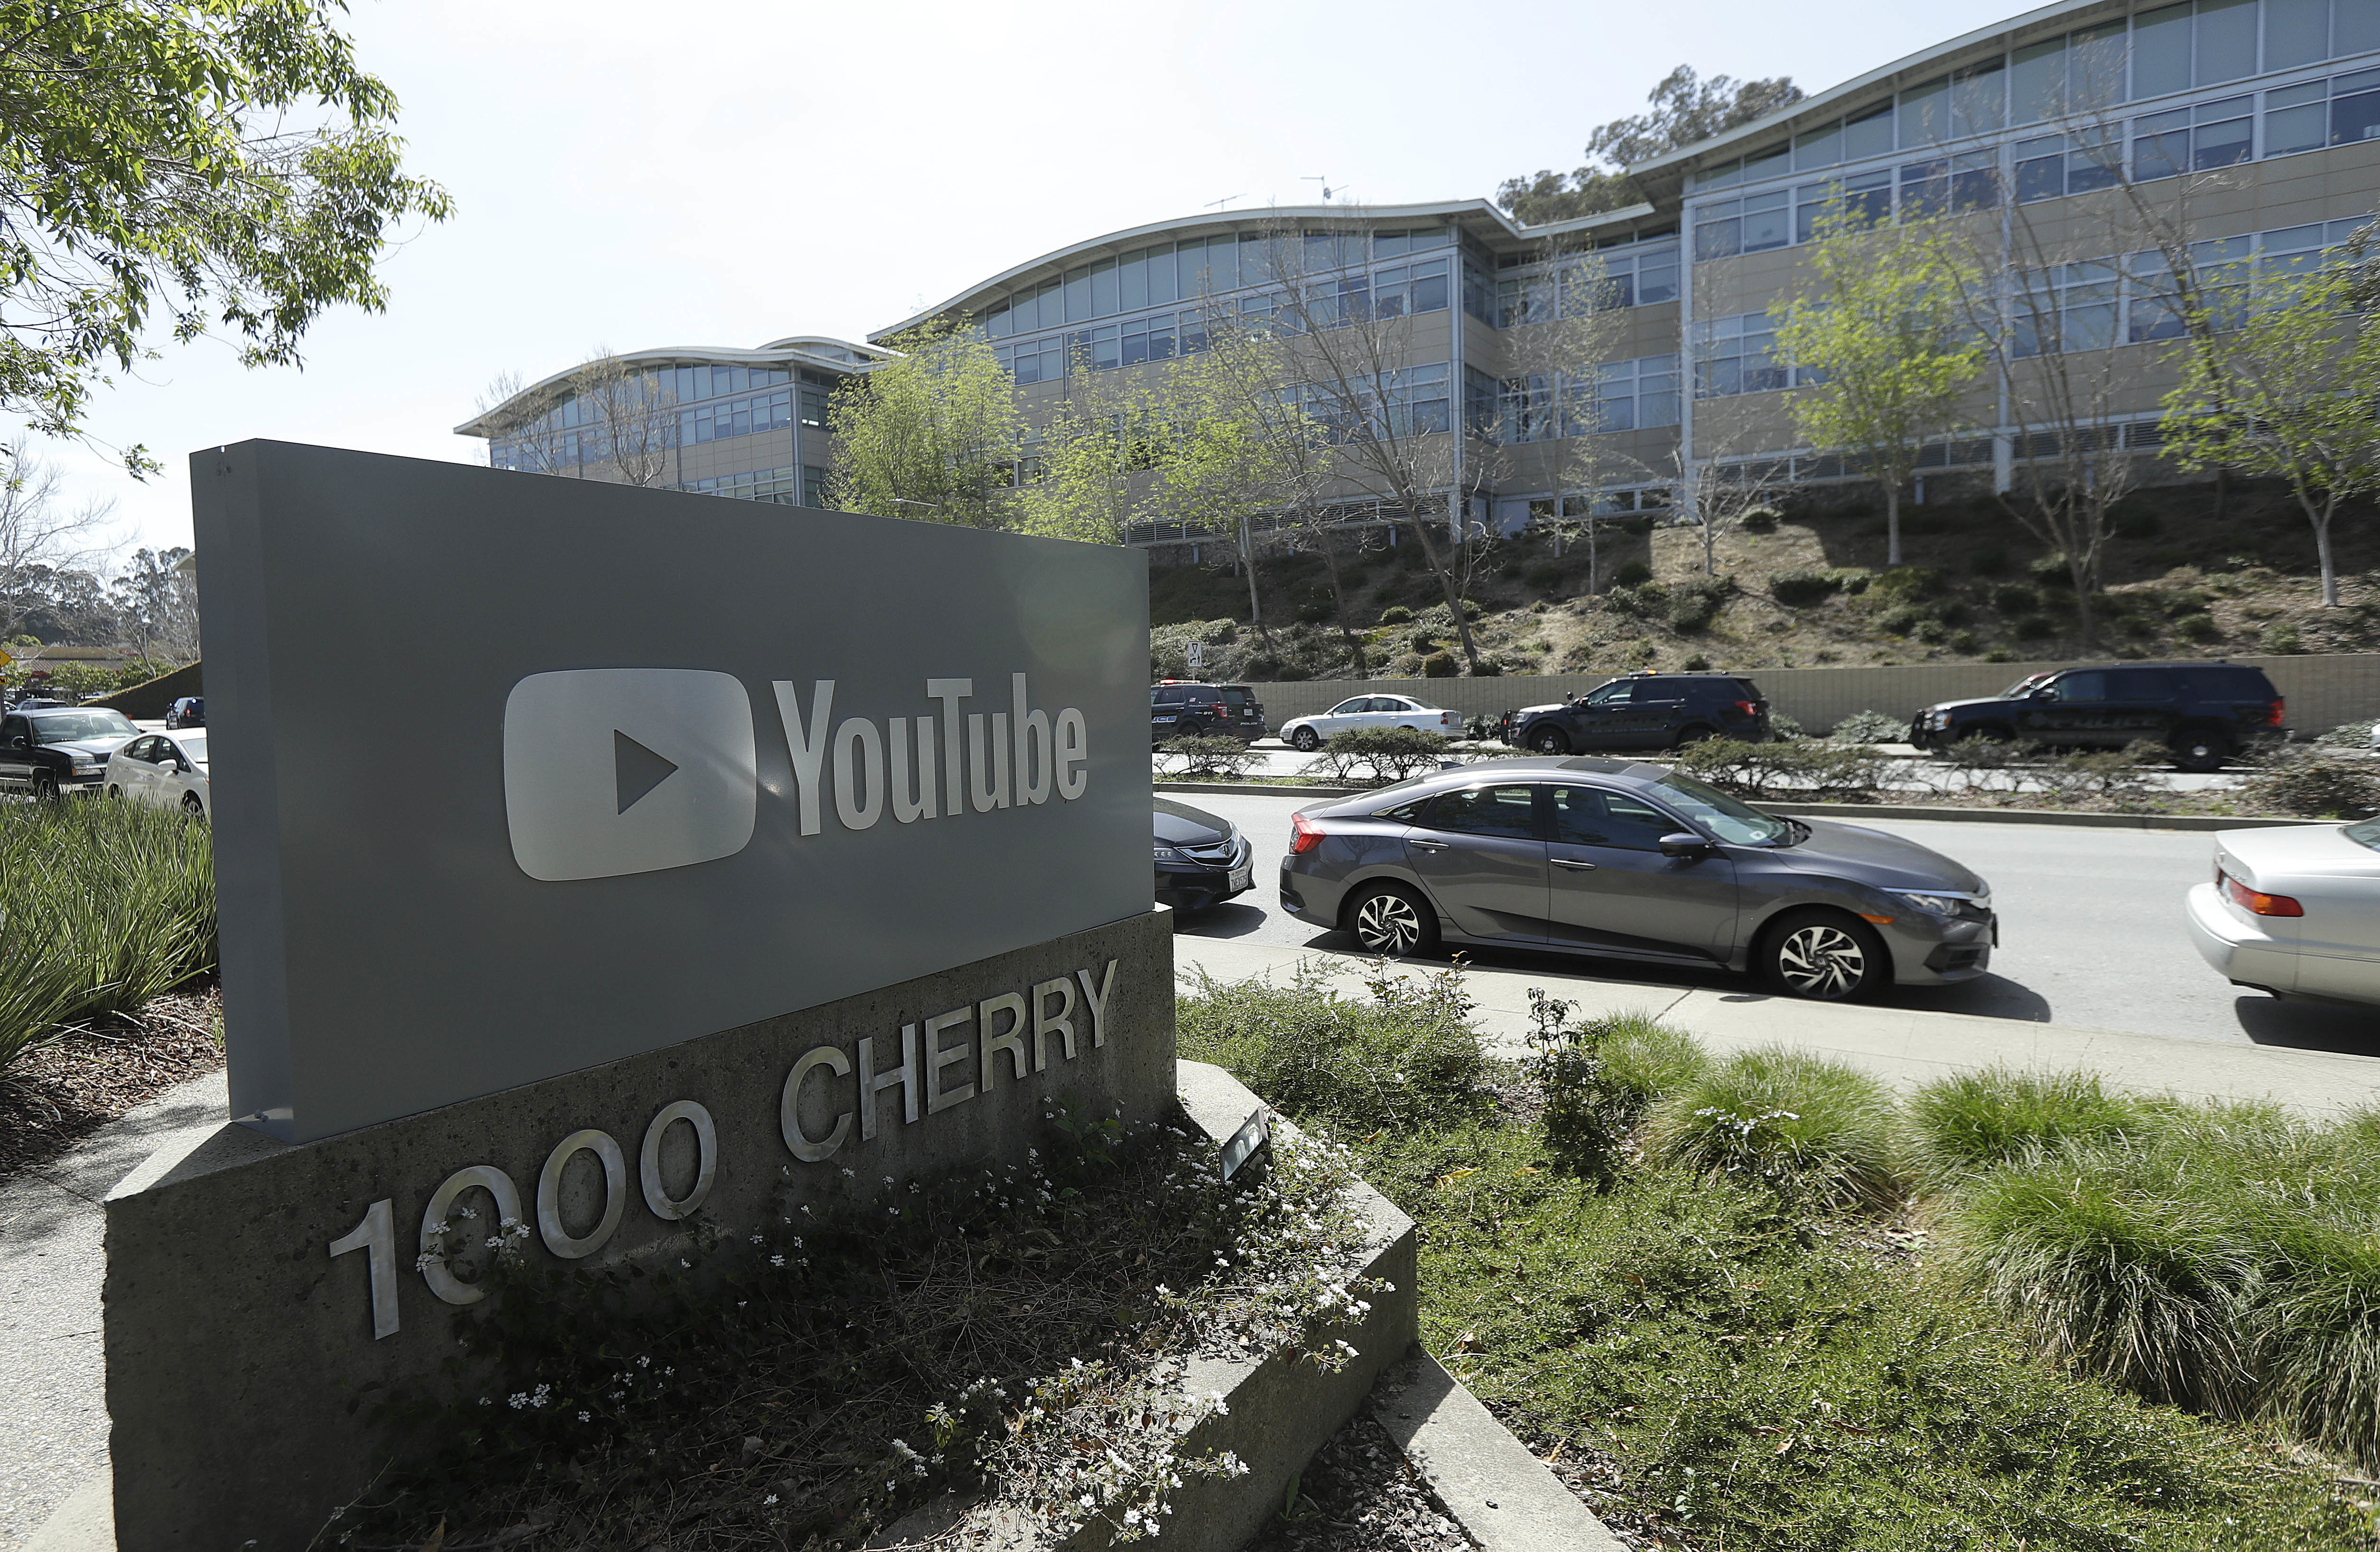 A YouTube sign is shown across the street from the company's offices in San Bruno, Calif., Tuesday, April 3, 2018. A woman opened fire at YouTube headquarters Tuesday, setting off a panic among employees and wounding several people before fatally shooting herself, police and witnesses said.